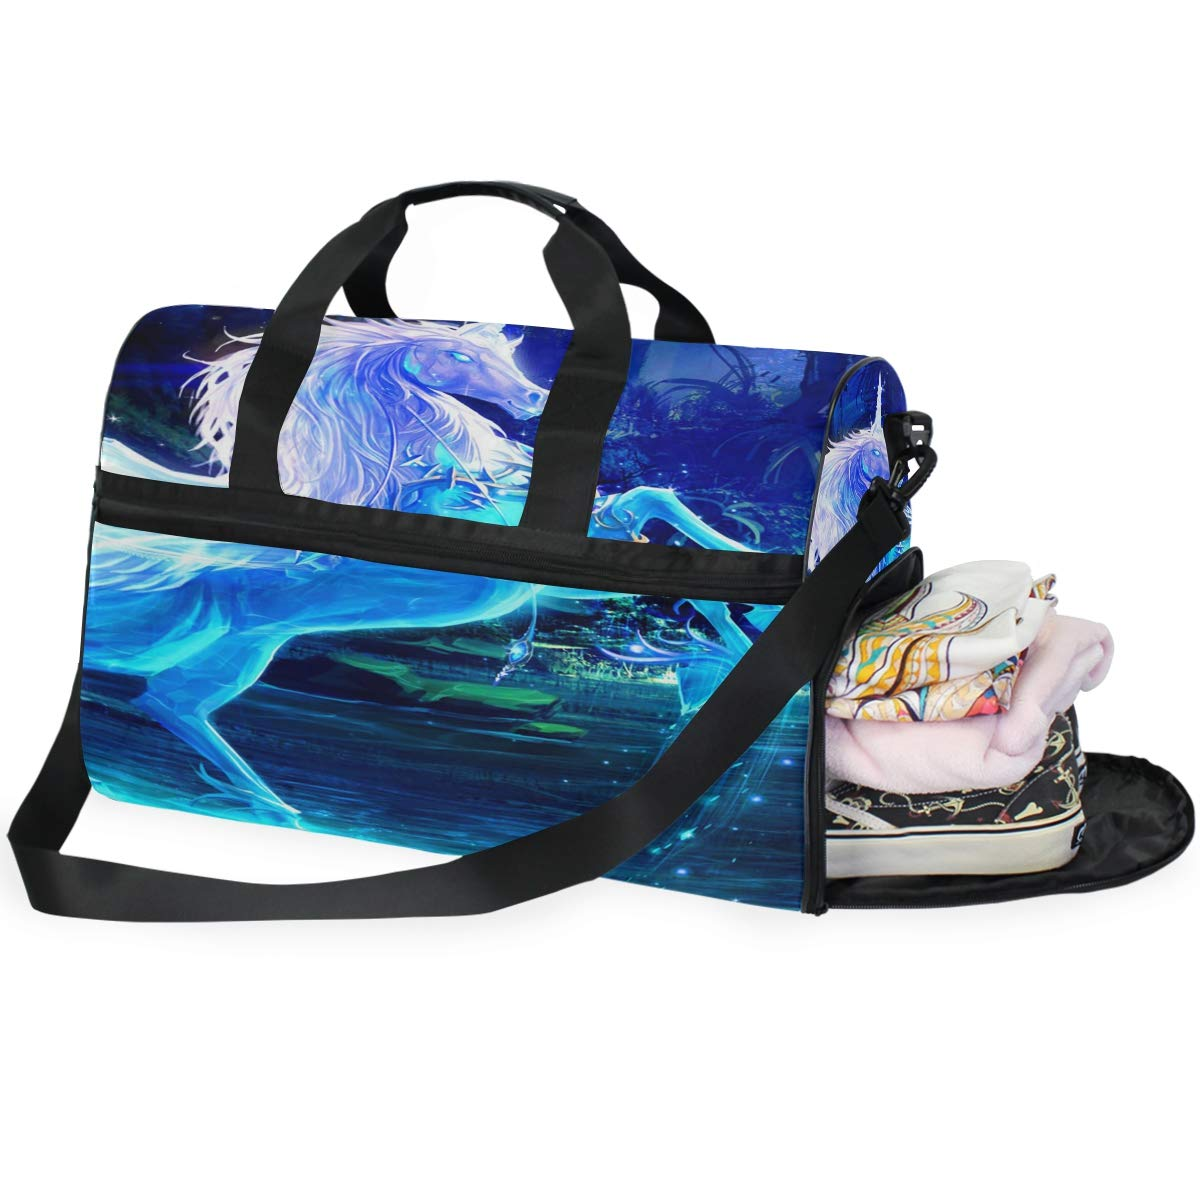 Travel Tote Luggage Weekender Duffle Bag Cute Cartoon Blue Shark Large Canvas shoulder bag with Shoe Compartment